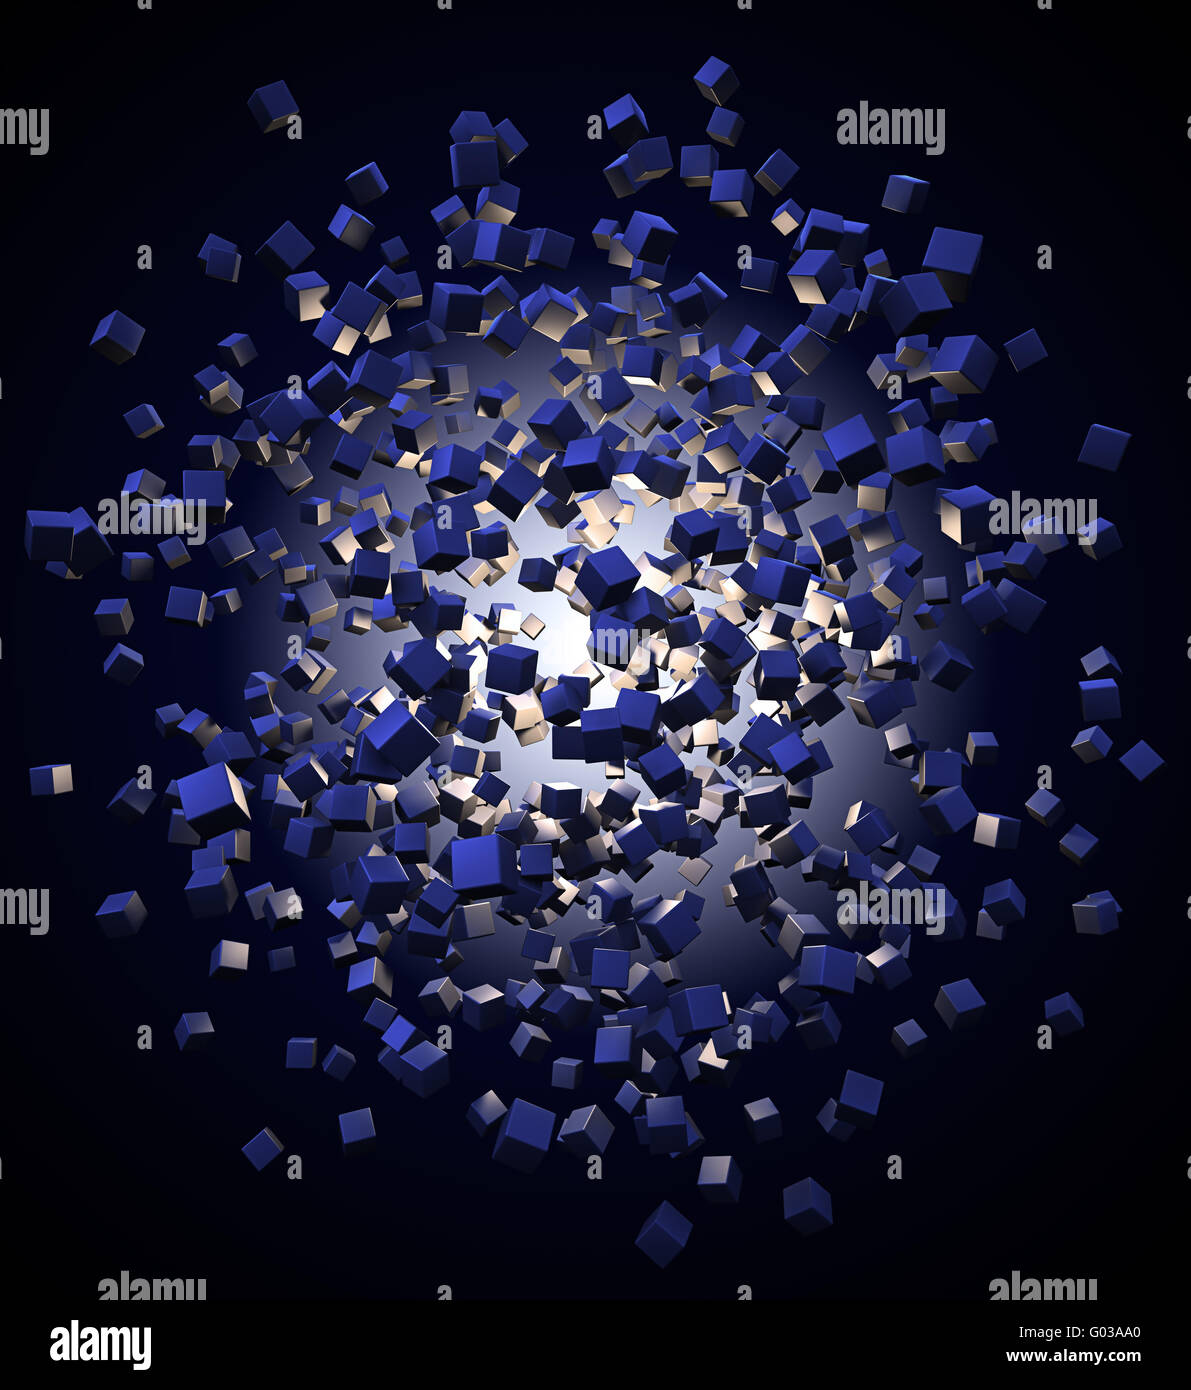 An explotion of abstract cubes cgi background - Stock Image